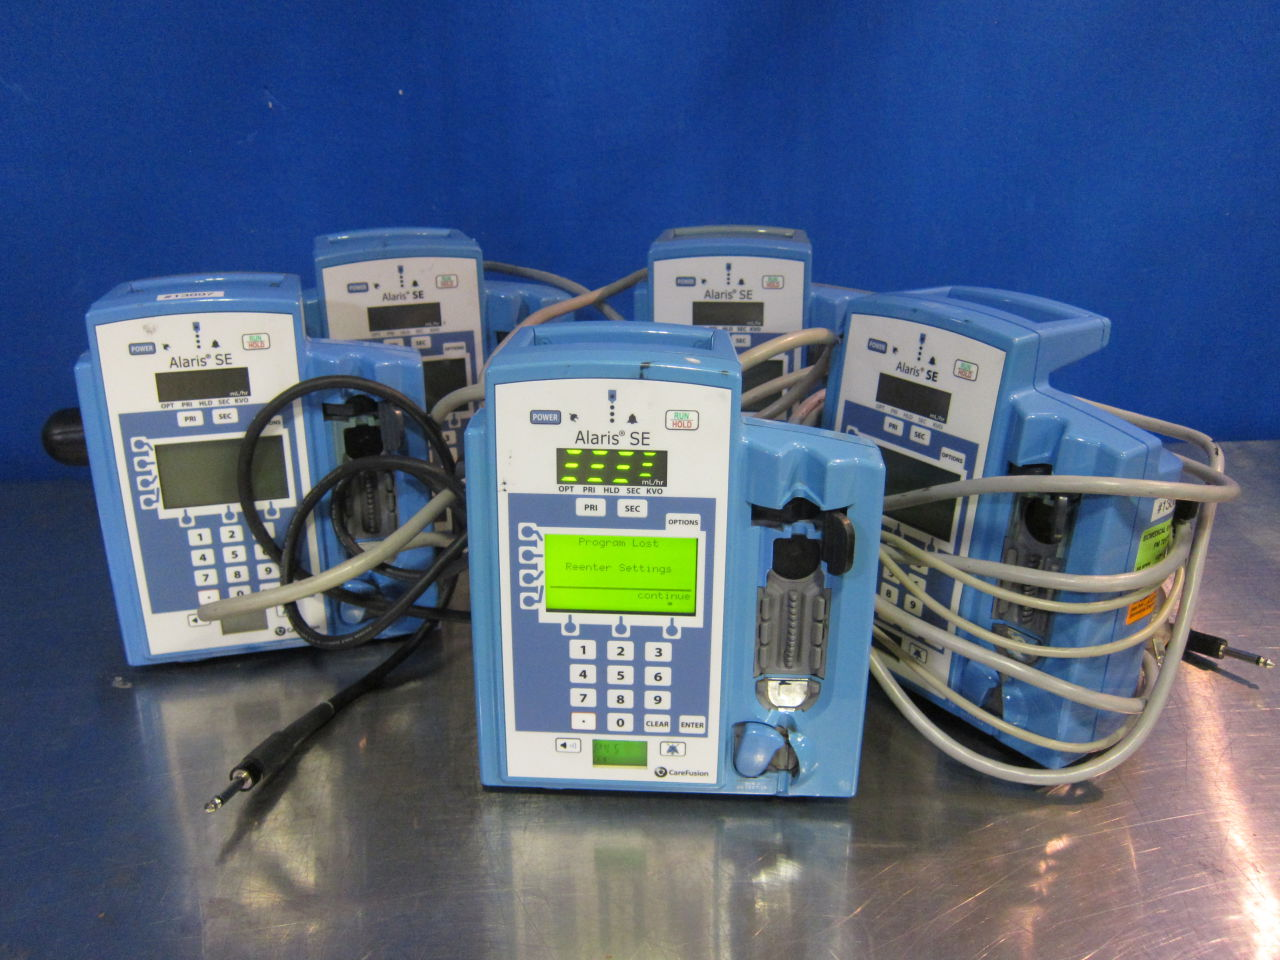 ALARIS MEDICAL SYSTEMS 7130  - Lot of 5 Pump IV Infusion